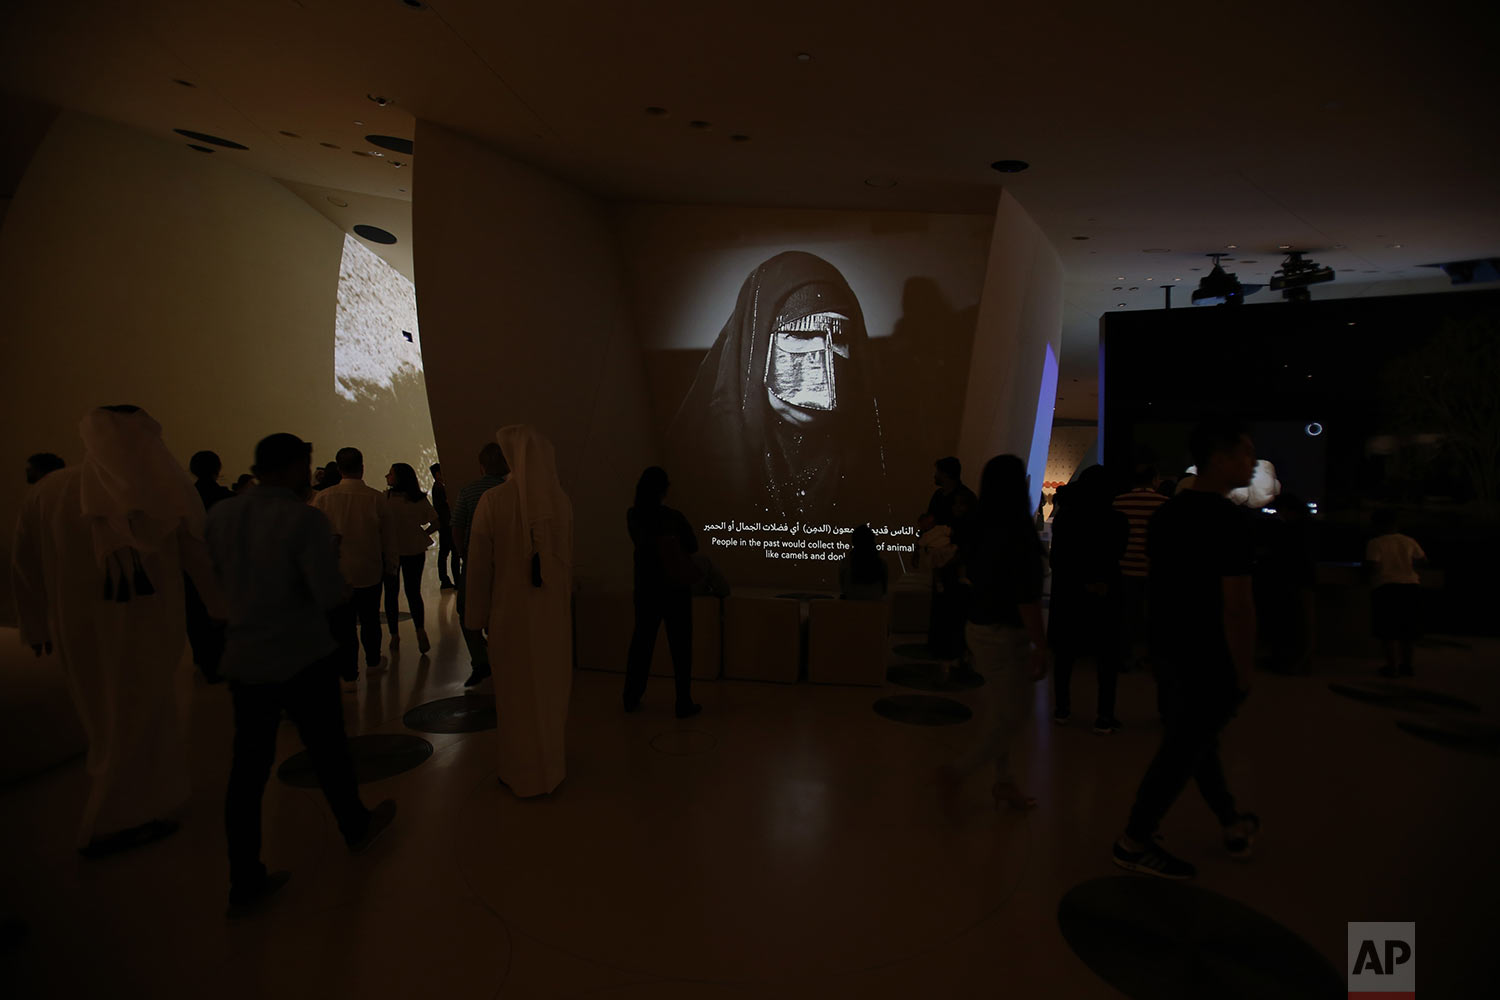 In this Monday, April 22, 2019 photo, people visit one of the galleries with an image of a Qatari woman covered her face with traditional Burqa, at the National Museum of Qatar designed by French architect, Jean Nouvel who got his inspiration from the desert rose crystal and has been opened on March 28th in Doha, Qatar. (AP Photo/Kamran Jebreili)